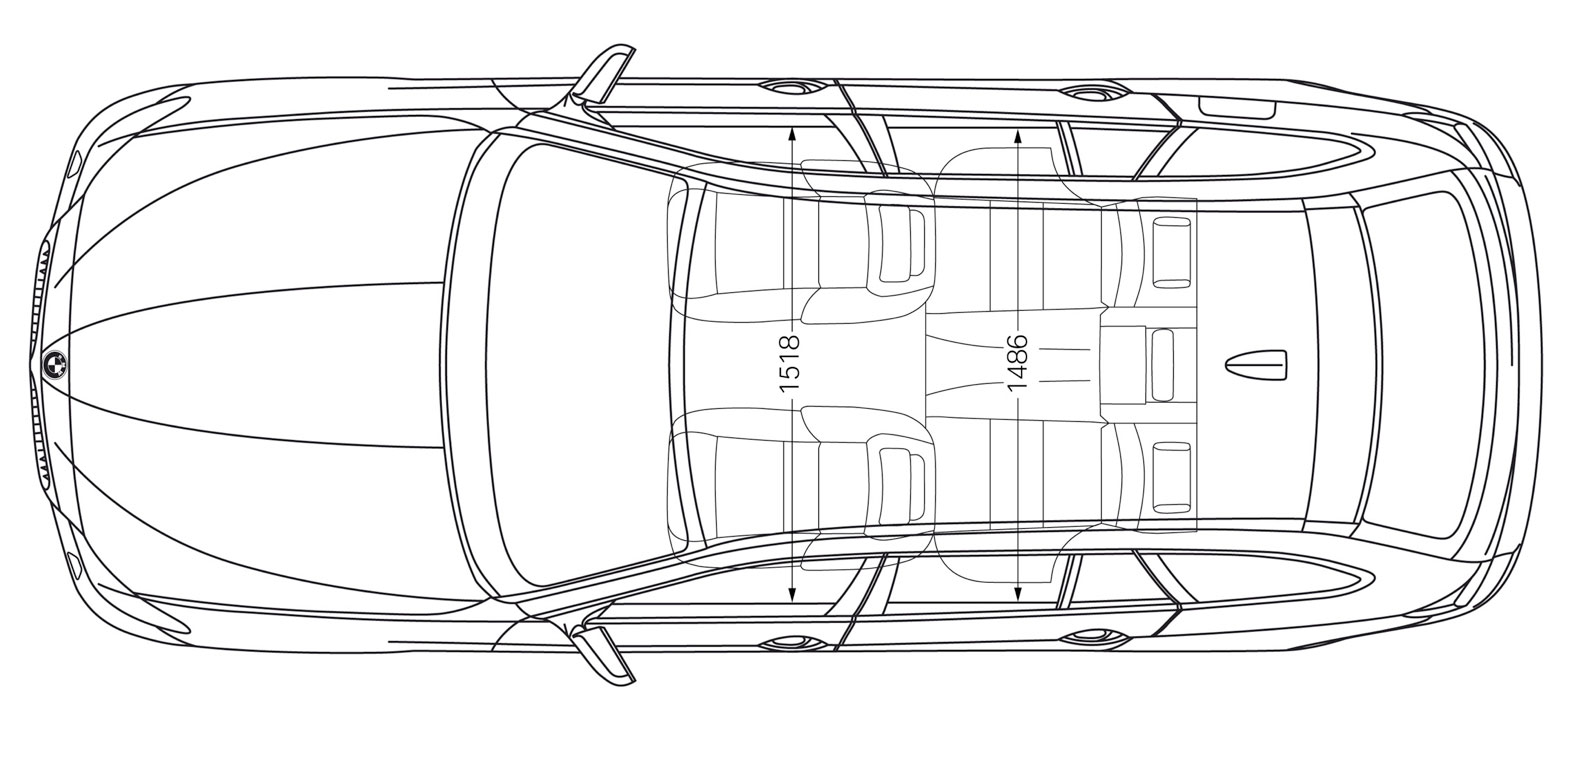 How To Draw A Car Topview